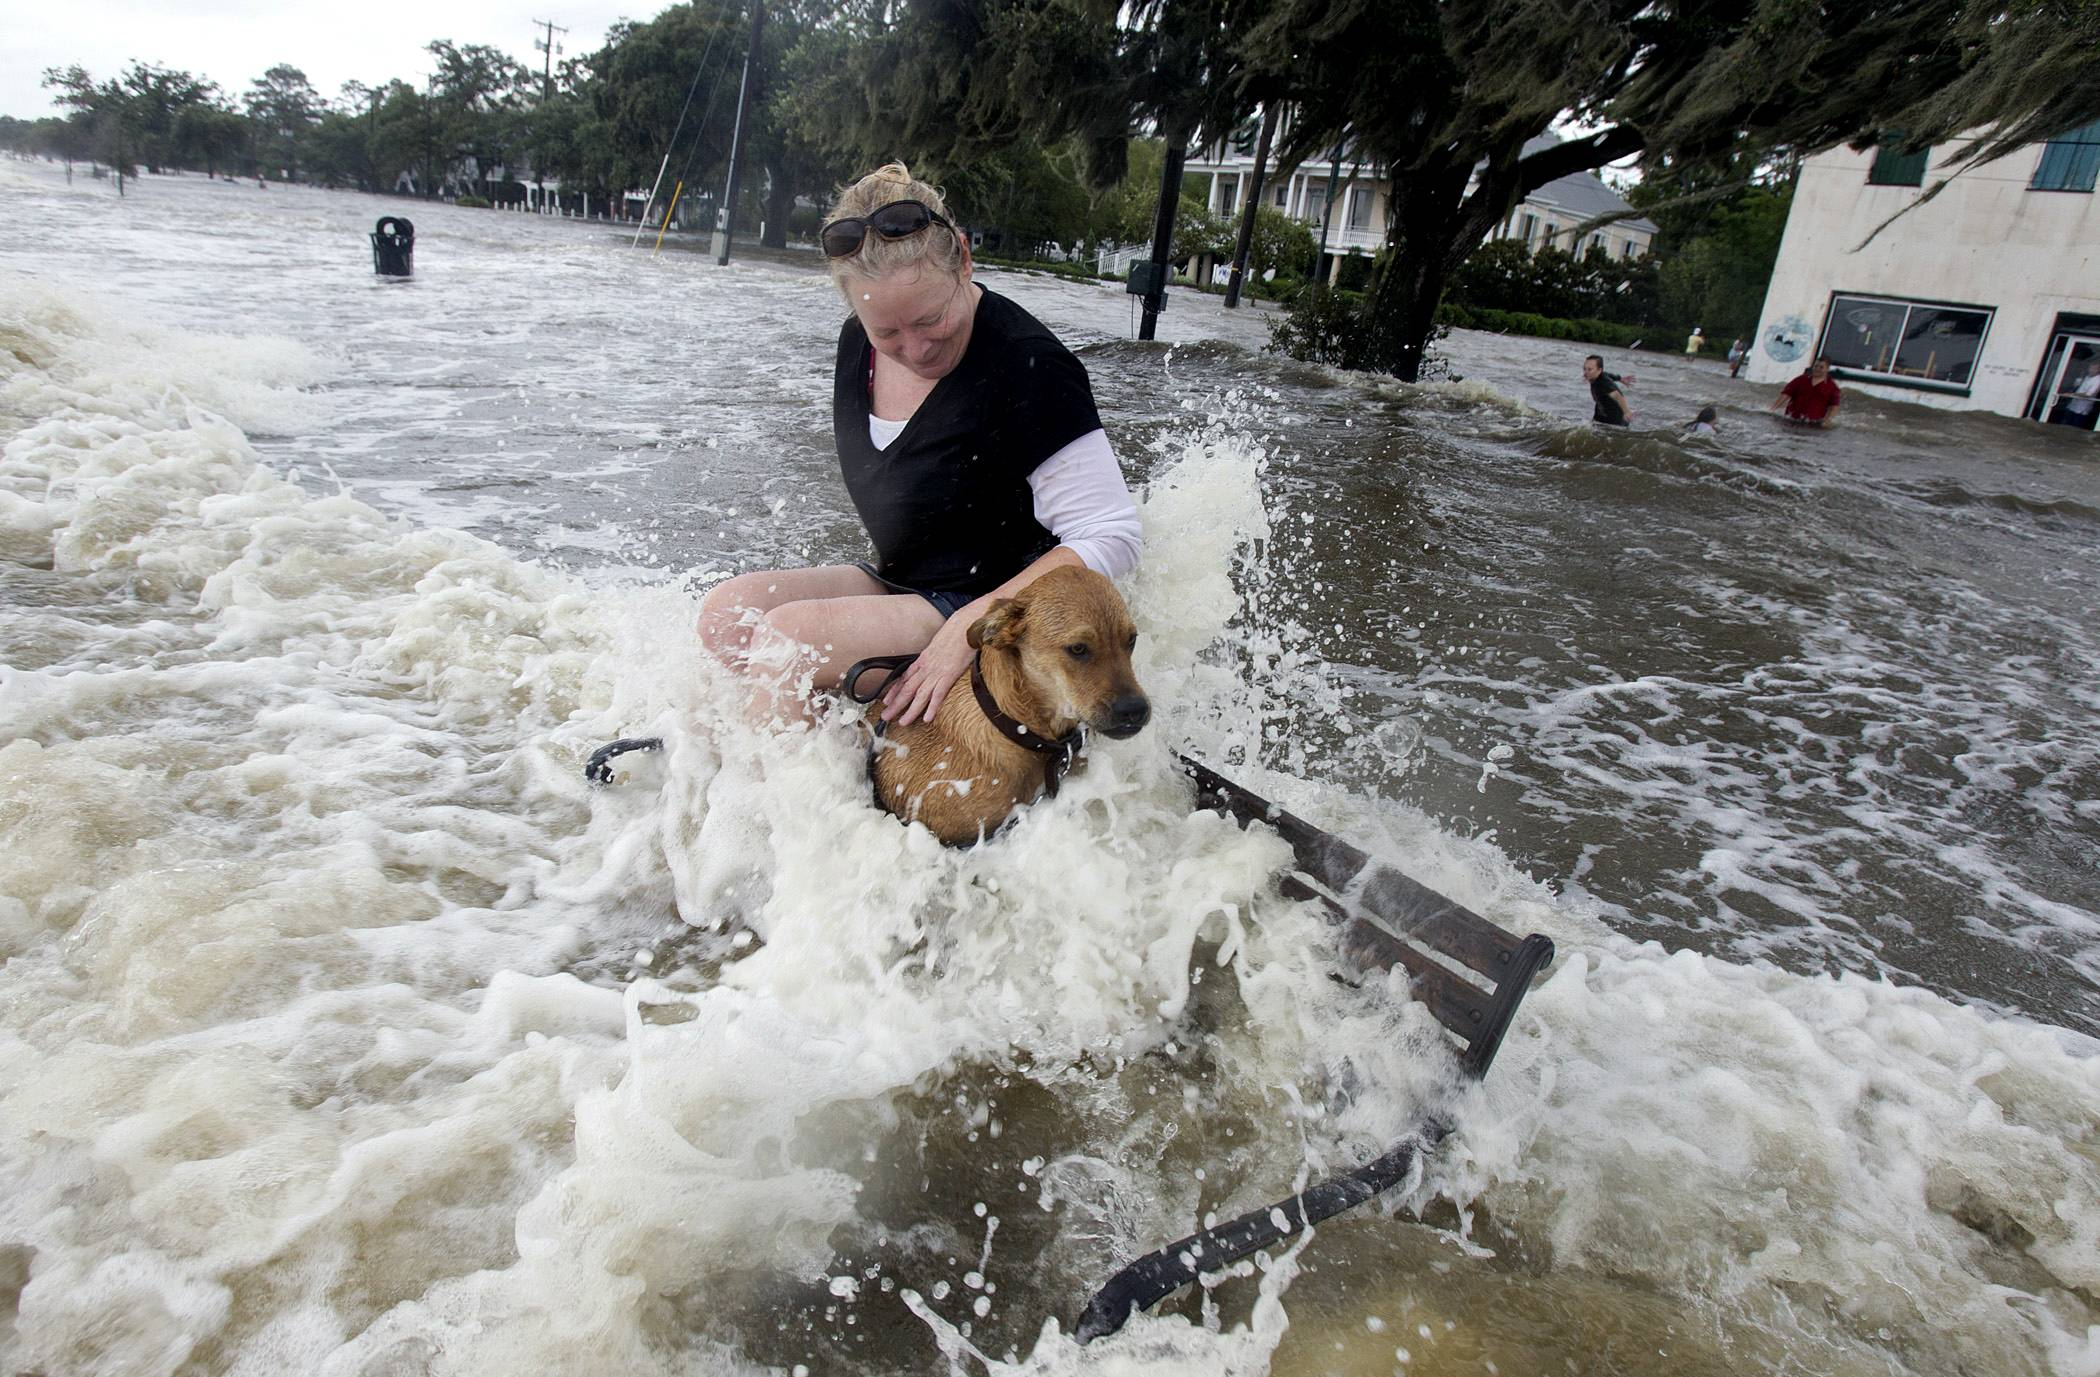 Holly Kennedy holds her dog as she watches the waves crash over the flood wall Sunday at the Mandeville, La., lakefront from Tropical Storm Lee. The vast, soggy storm system spent hours during the weekend hovering in the northernmost Gulf of Mexico. Its slow crawl to the north gave more time for its drenching rain bands to pelt a wide swath of vulnerable coastline, raising the flood threat.